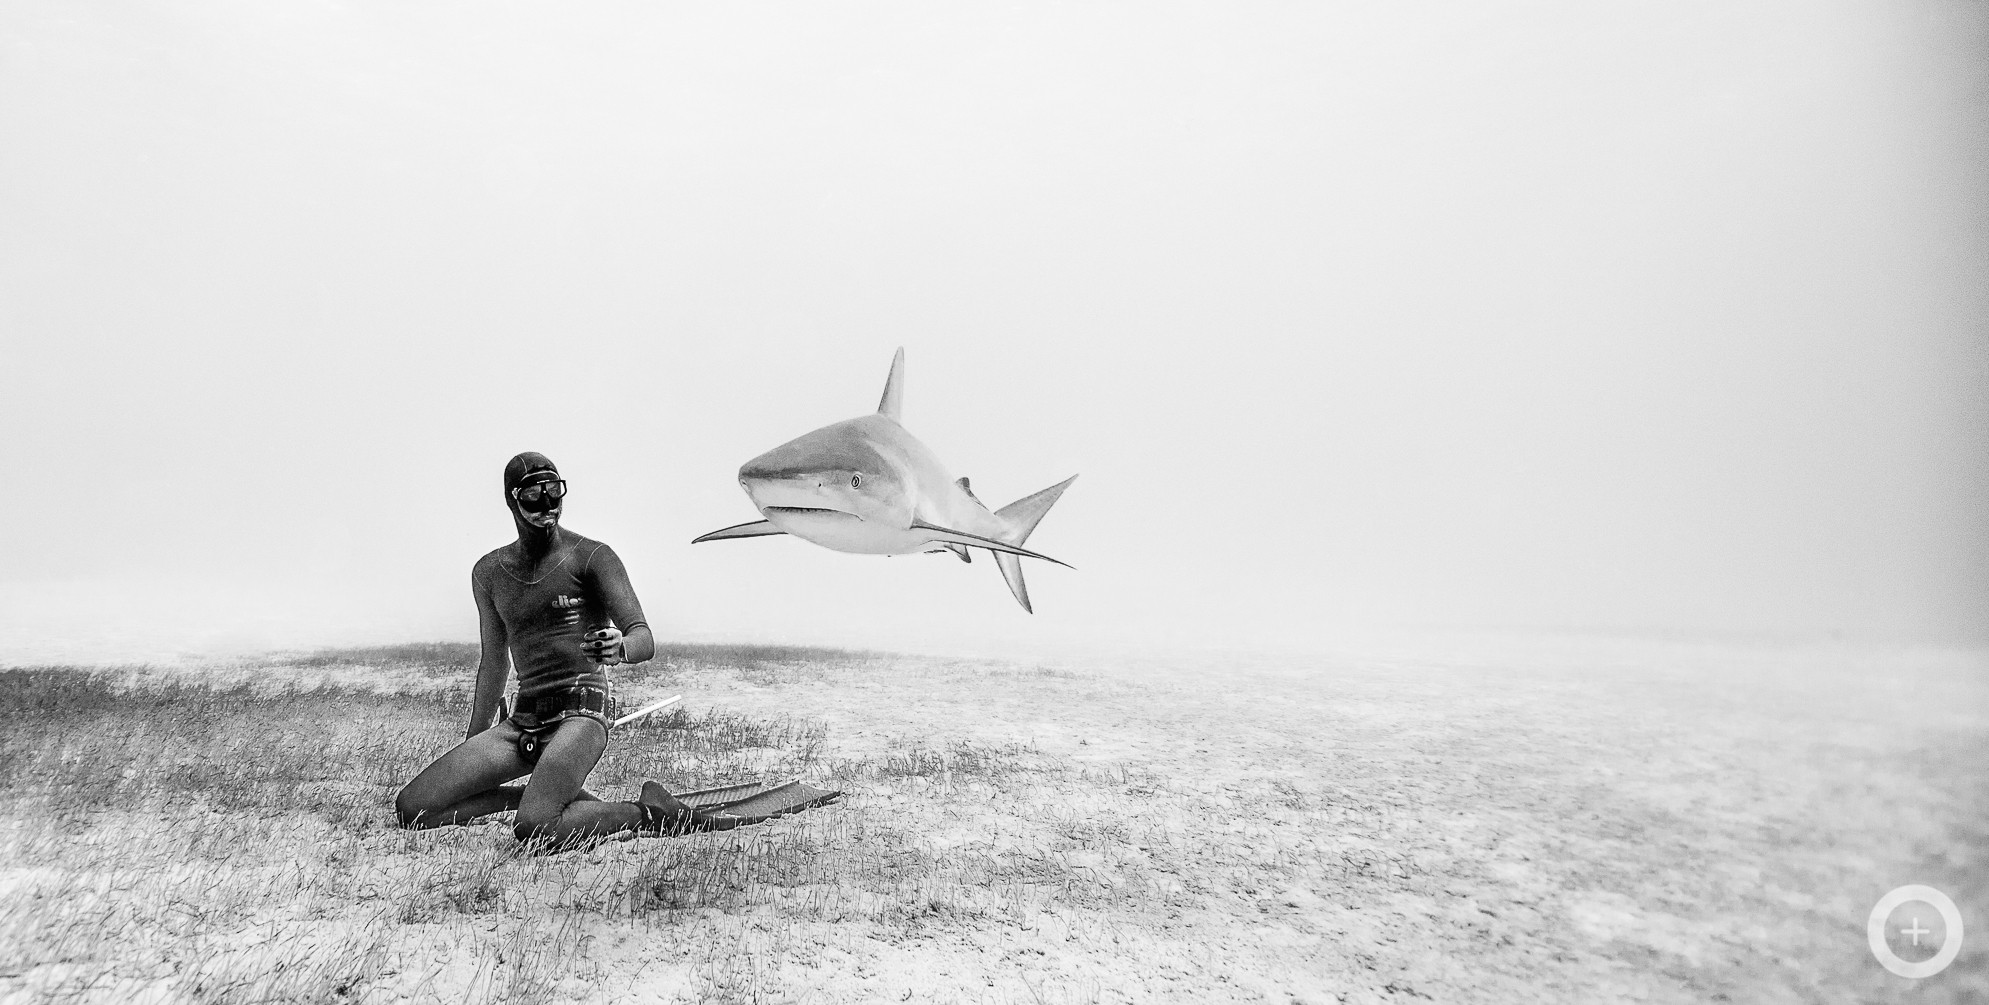 Meet the Freediving Couple Who Make Stunning Underwater Photos With